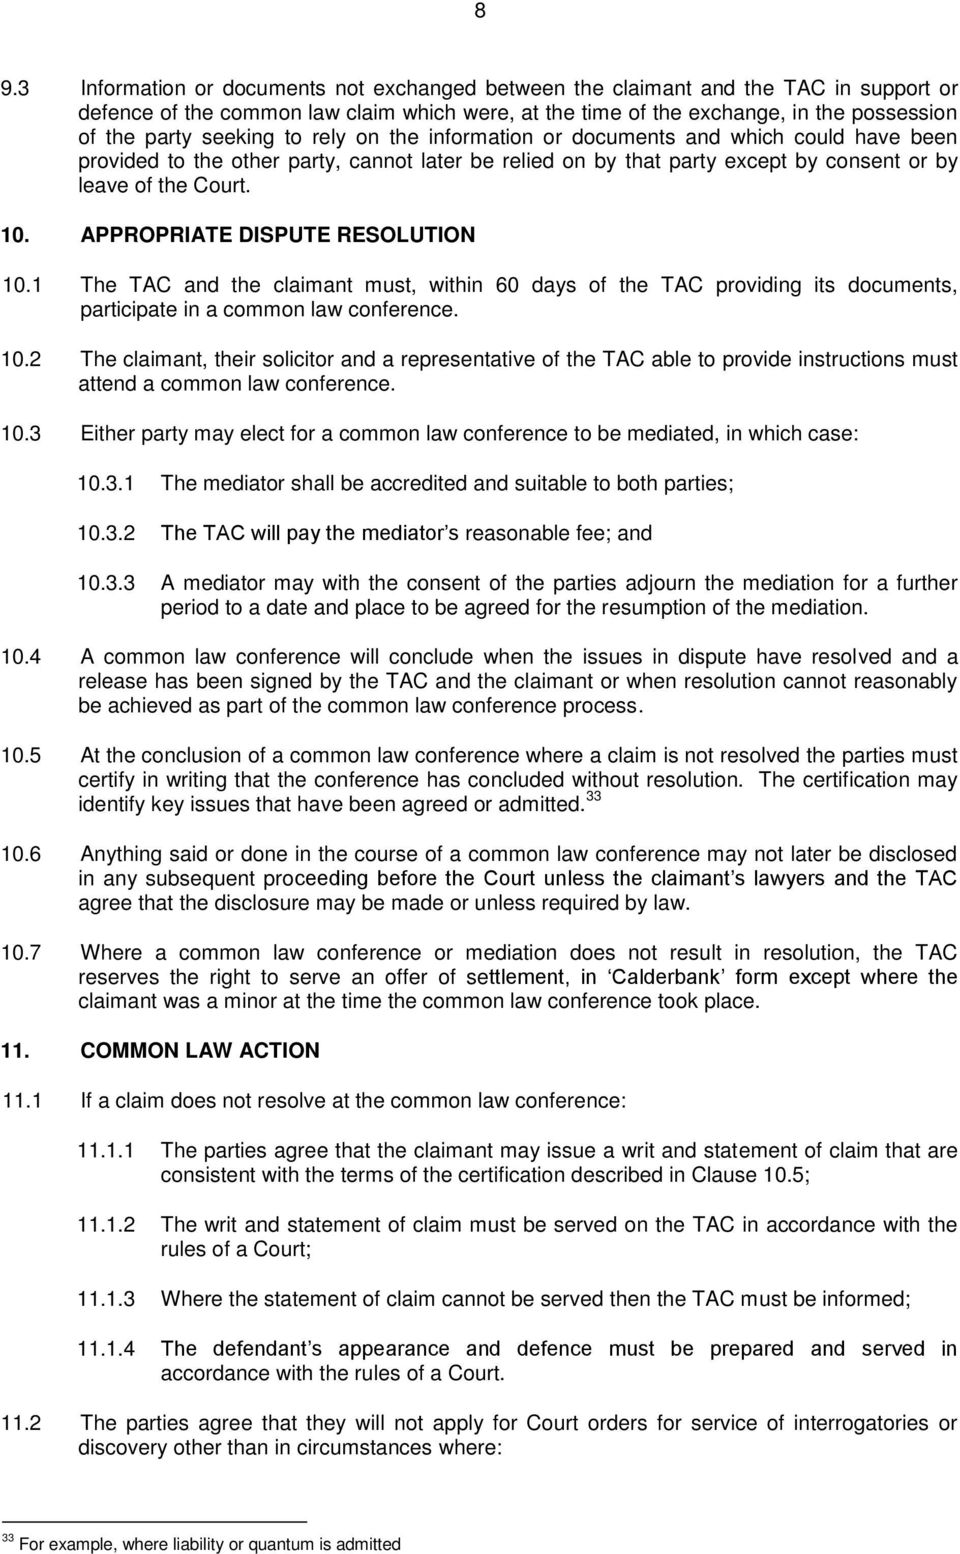 APPROPRIATE DISPUTE RESOLUTION 10.1 The TAC and the claimant must, within 60 days of the TAC providing its documents, participate in a common law conference. 10.2 The claimant, their solicitor and a representative of the TAC able to provide instructions must attend a common law conference.